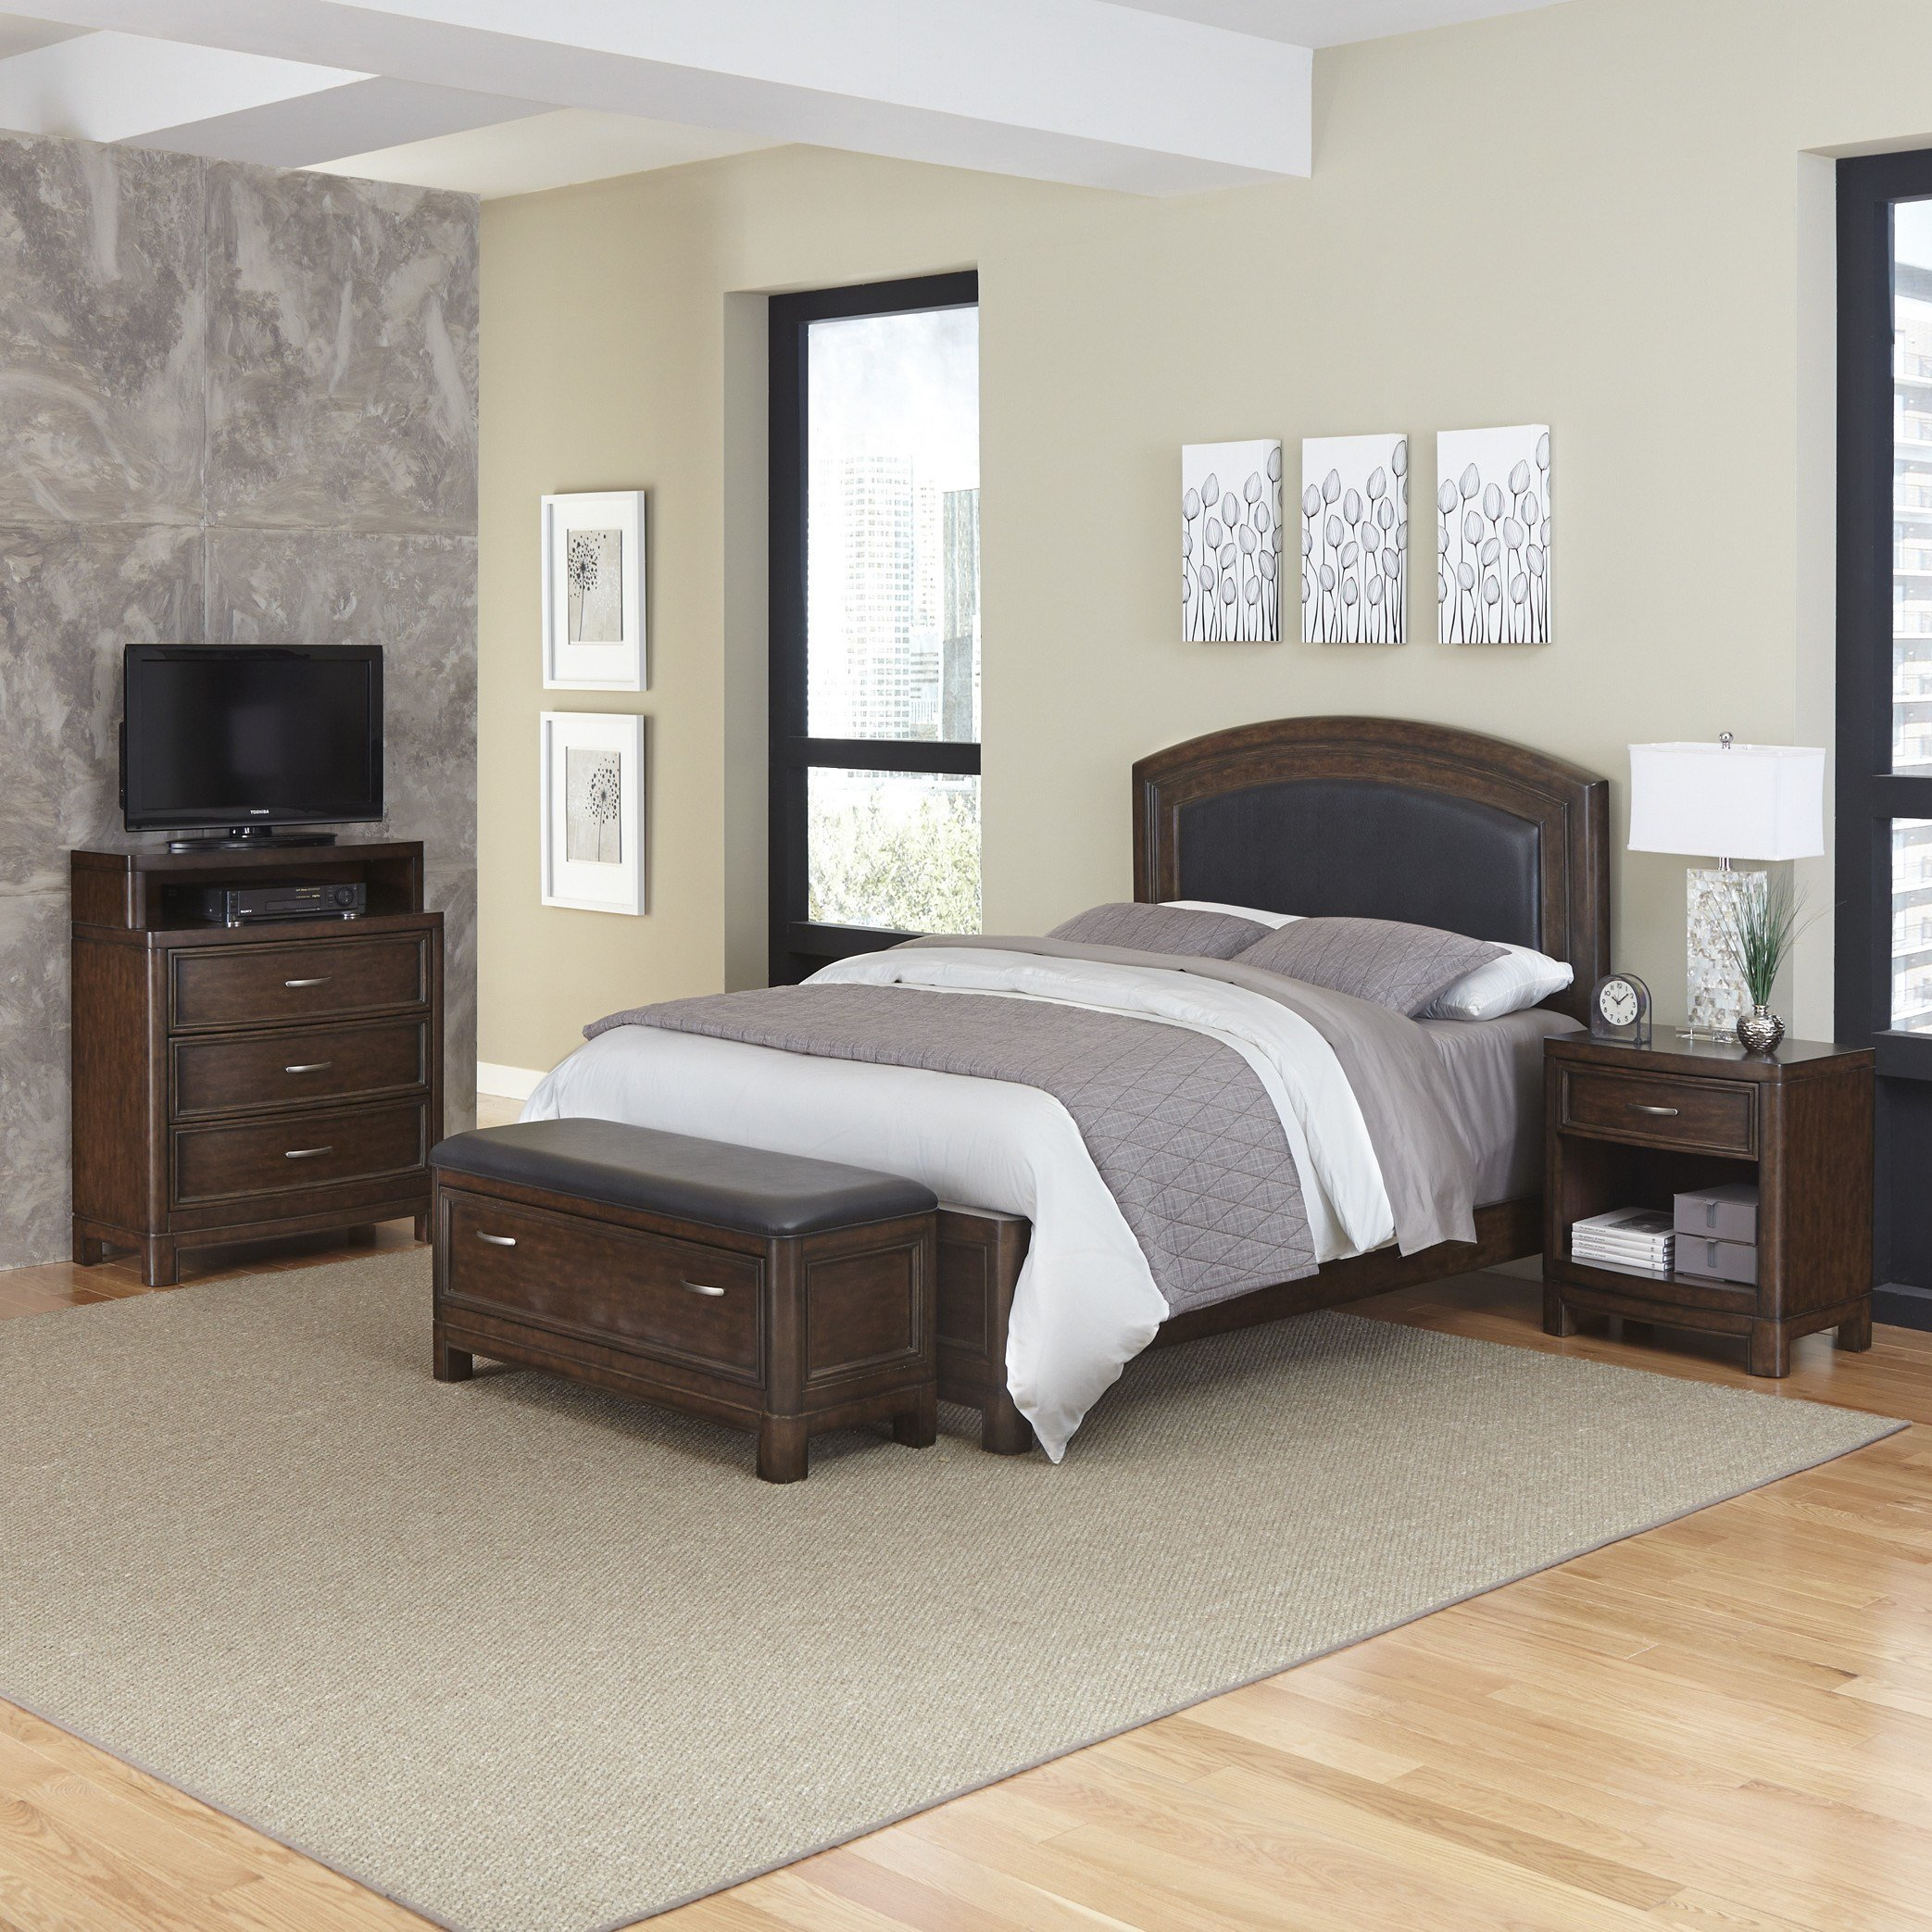 Best Home Styles Crescent Hill Panel 4 Piece Bedroom Set Wayfair With Pictures